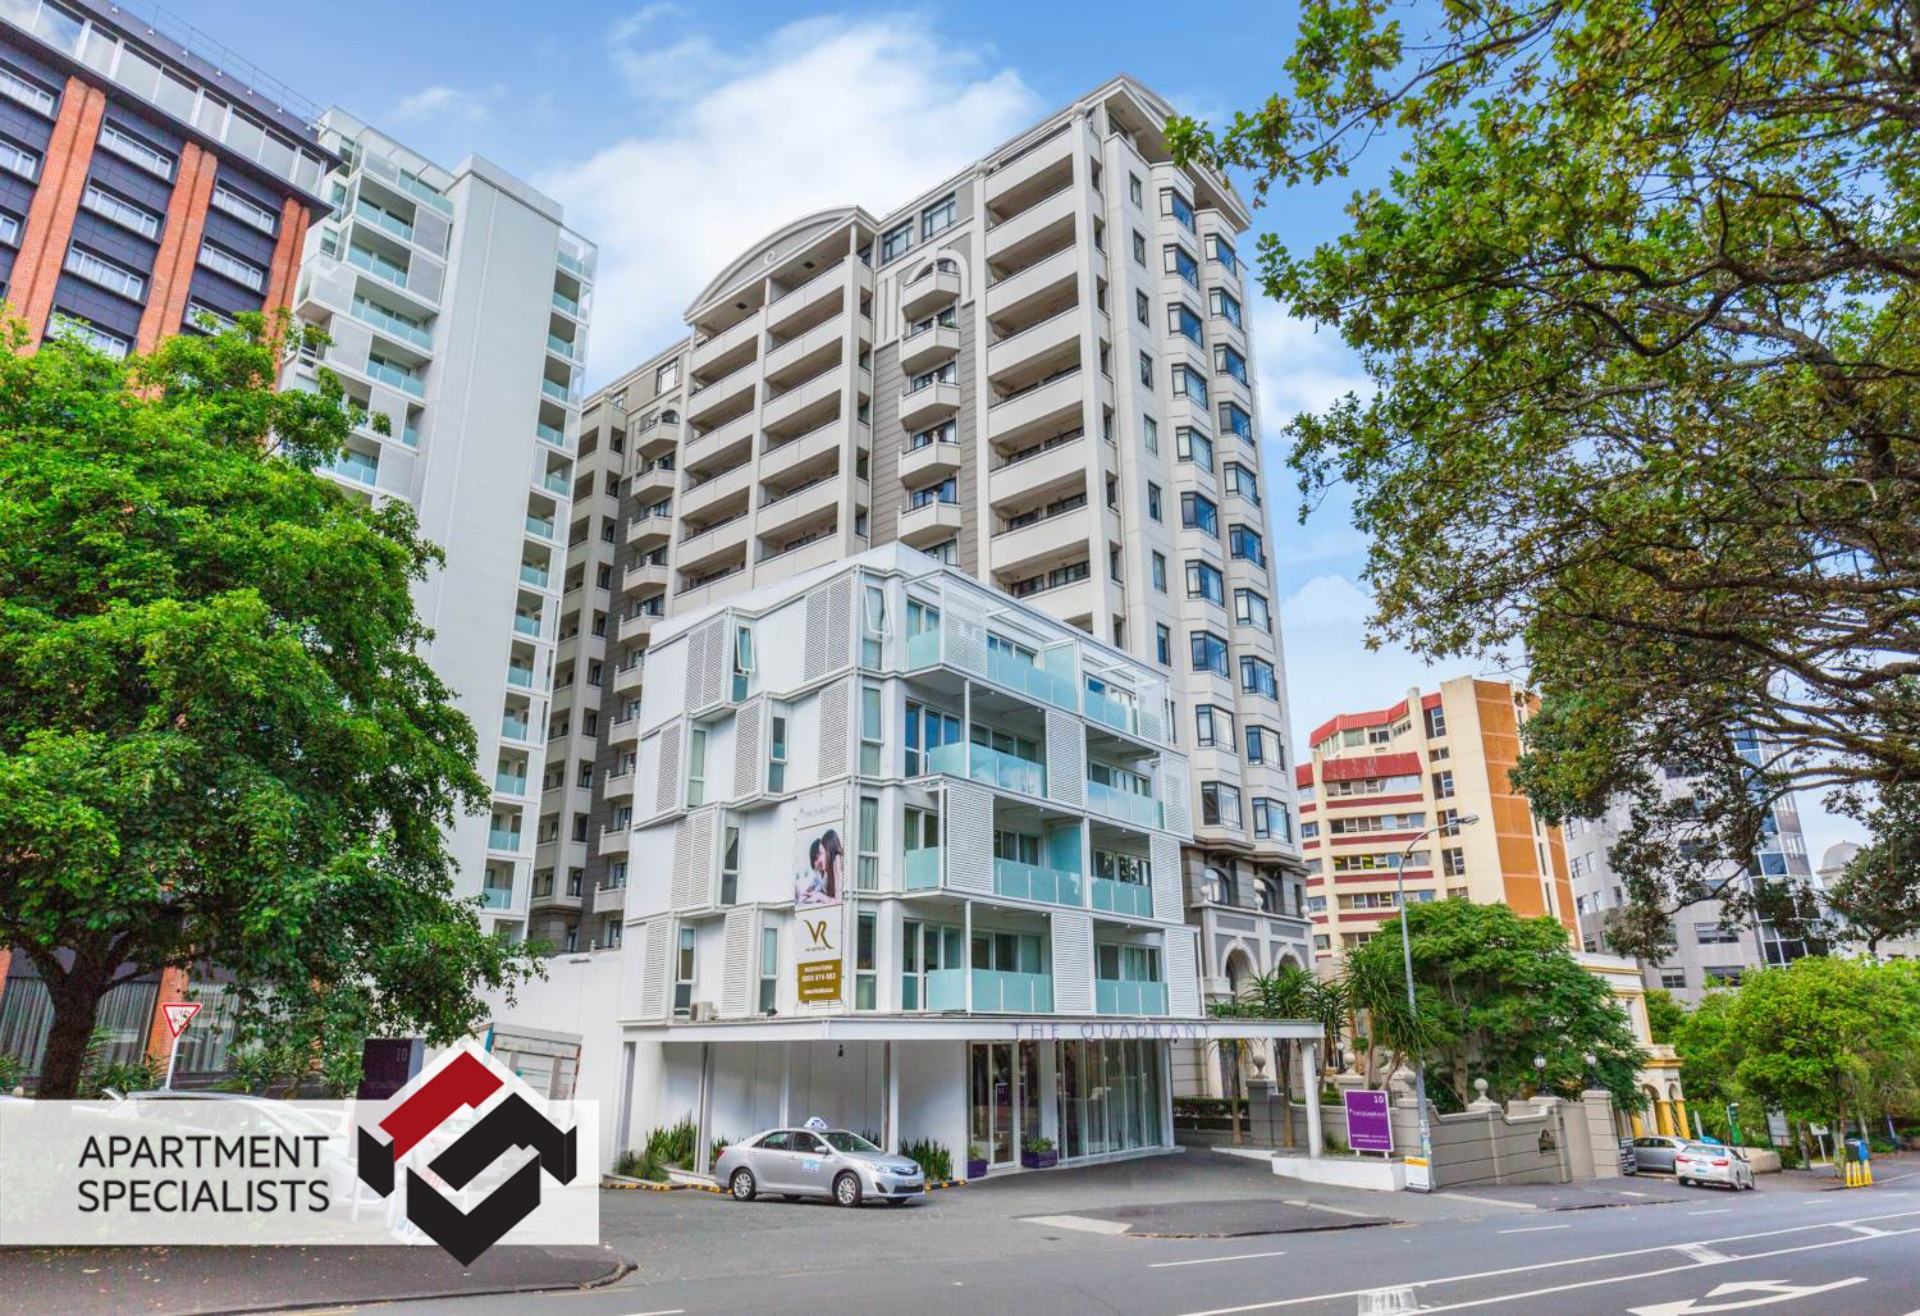 9 | 10 Waterloo Quadrant, City Centre | Apartment Specialists